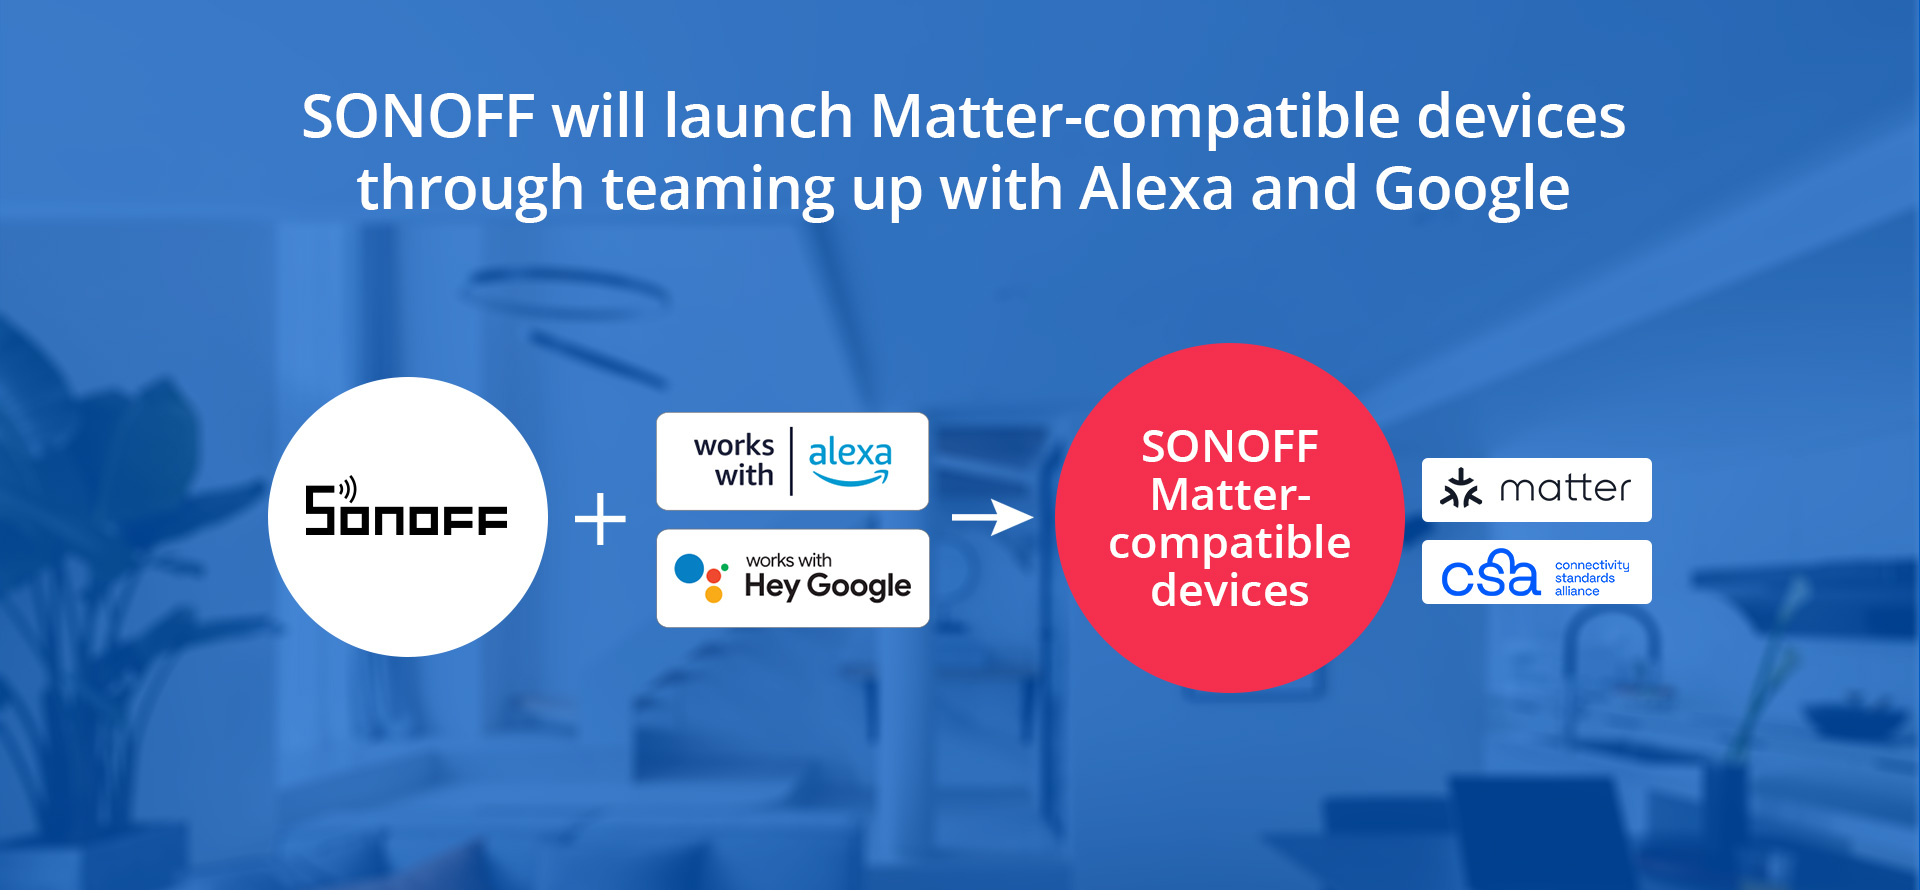 SONOFF, Alexa and Google commit to Matter Devices